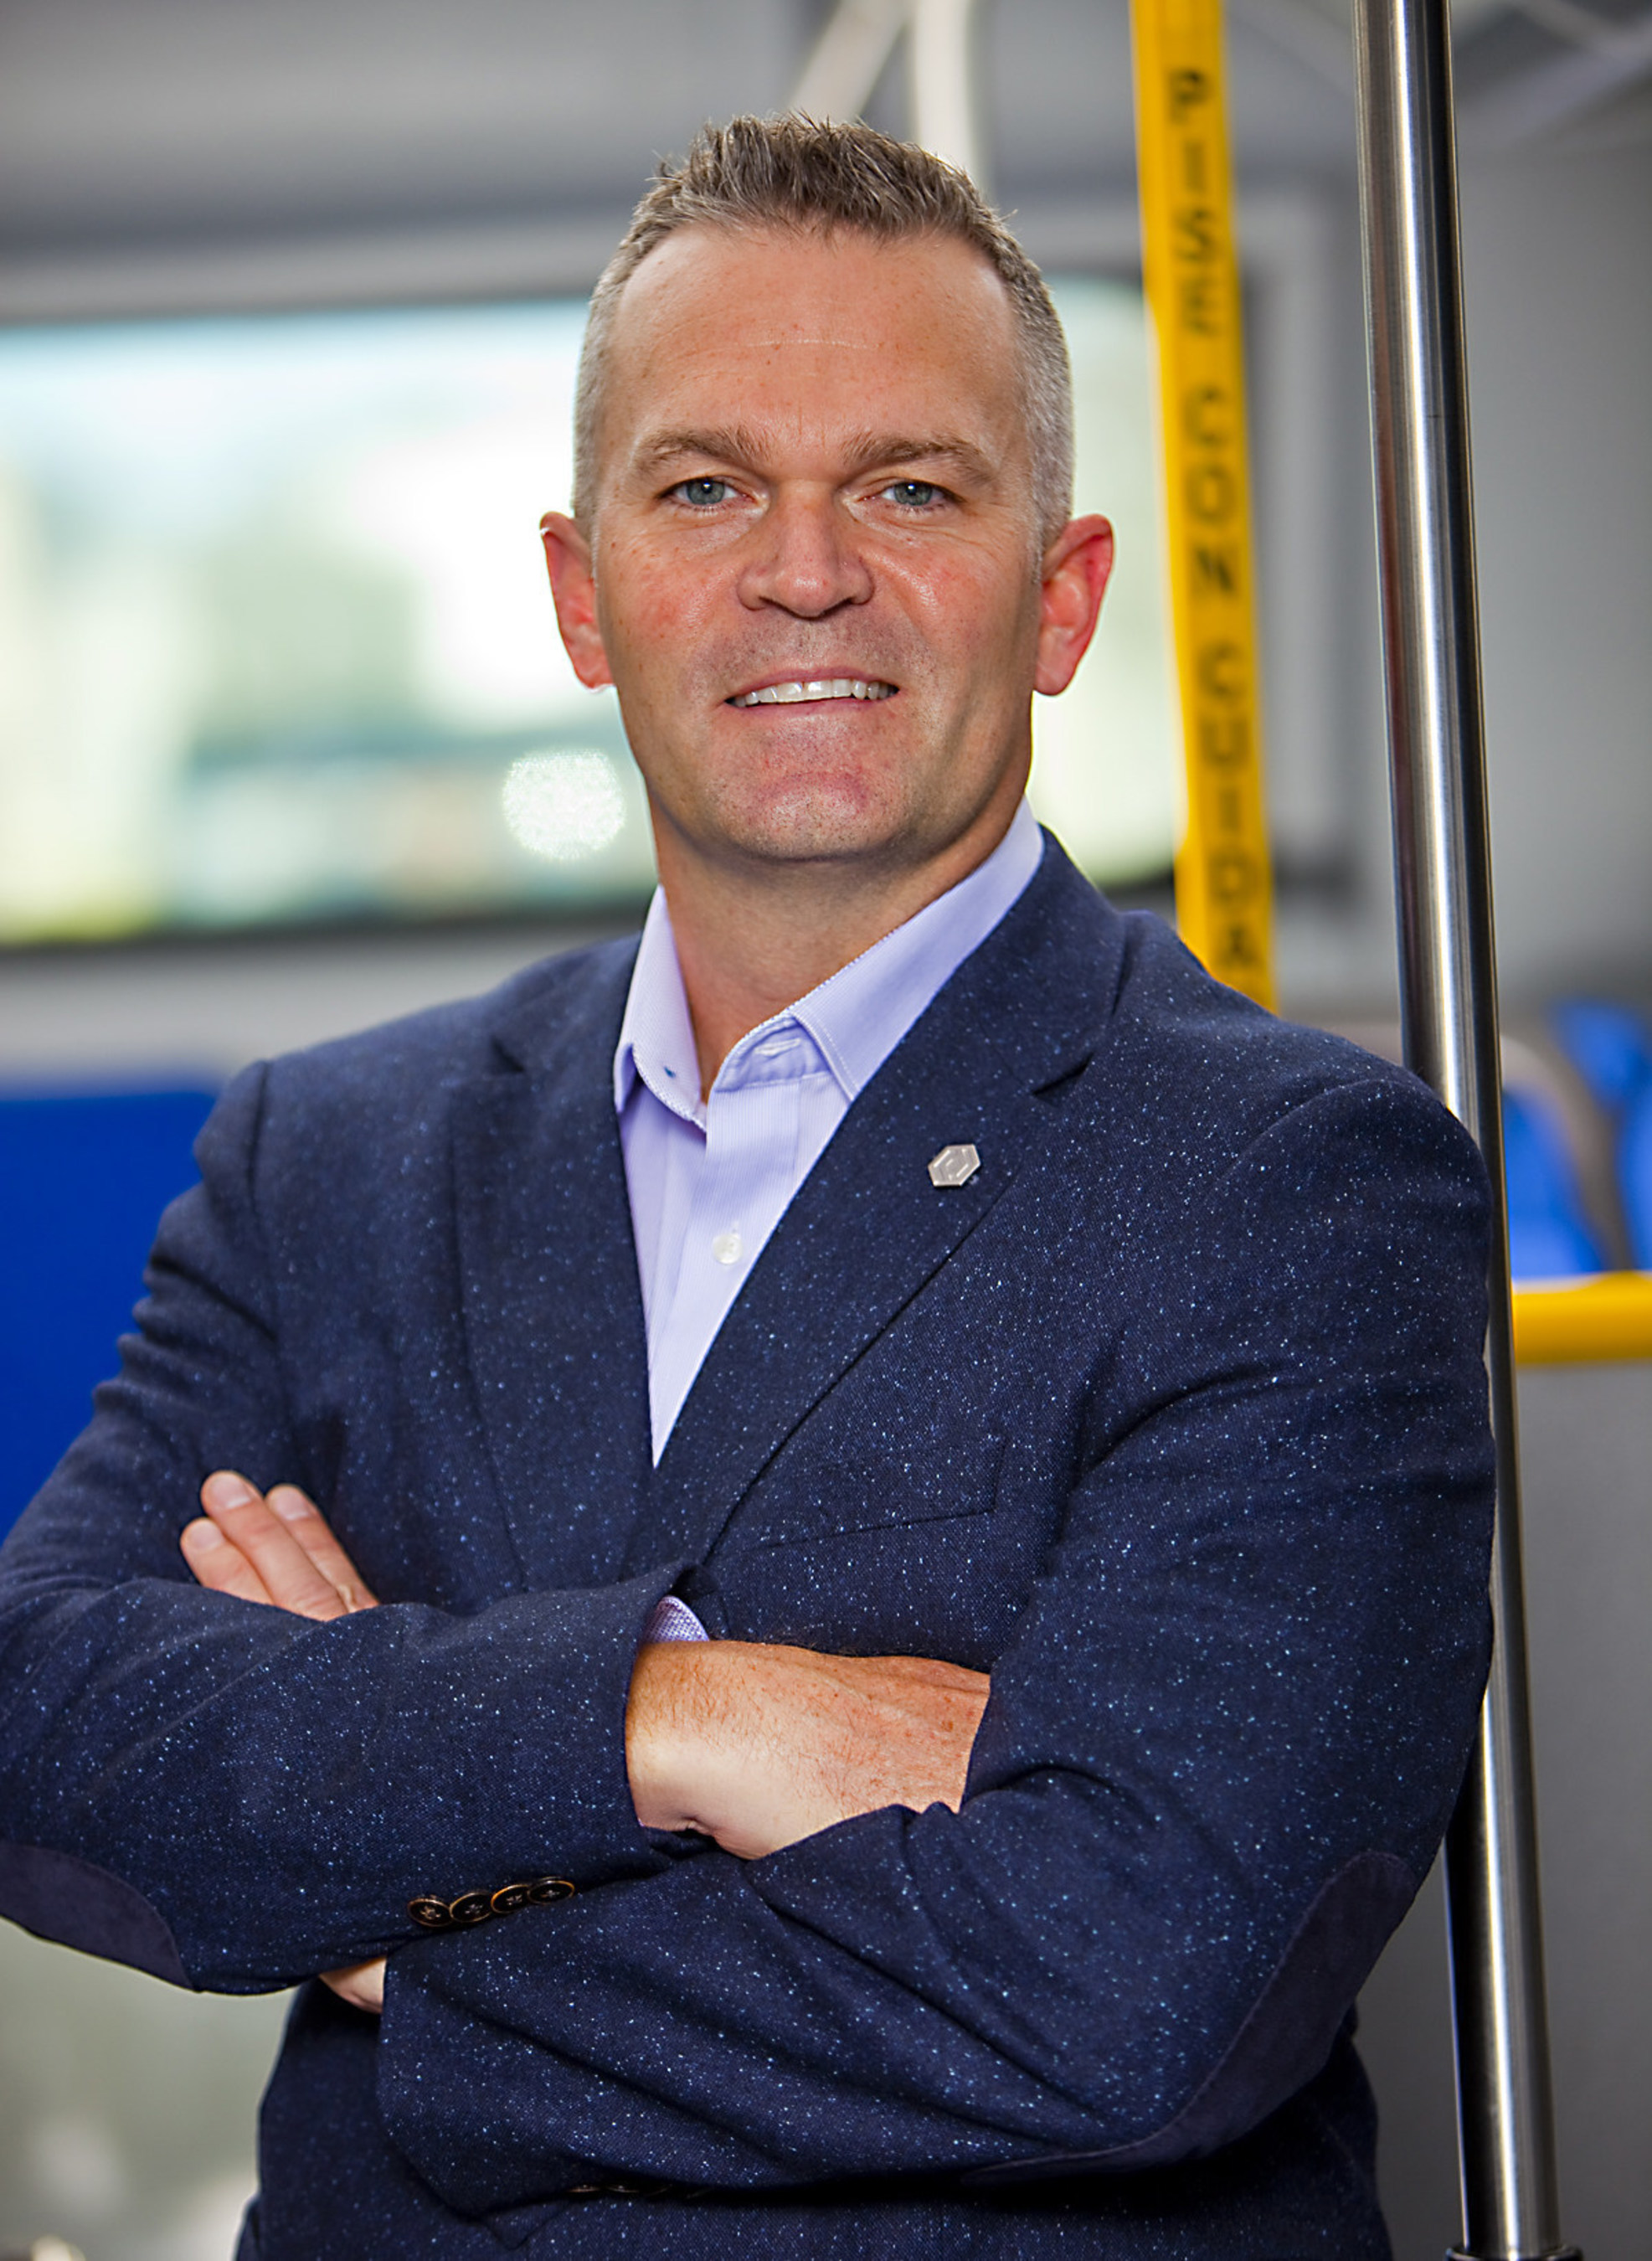 Tesla and Honeywell veteran, Josh Ensign, has been appointed COO of battery-electric transit vehicle company, Proterra, Inc.